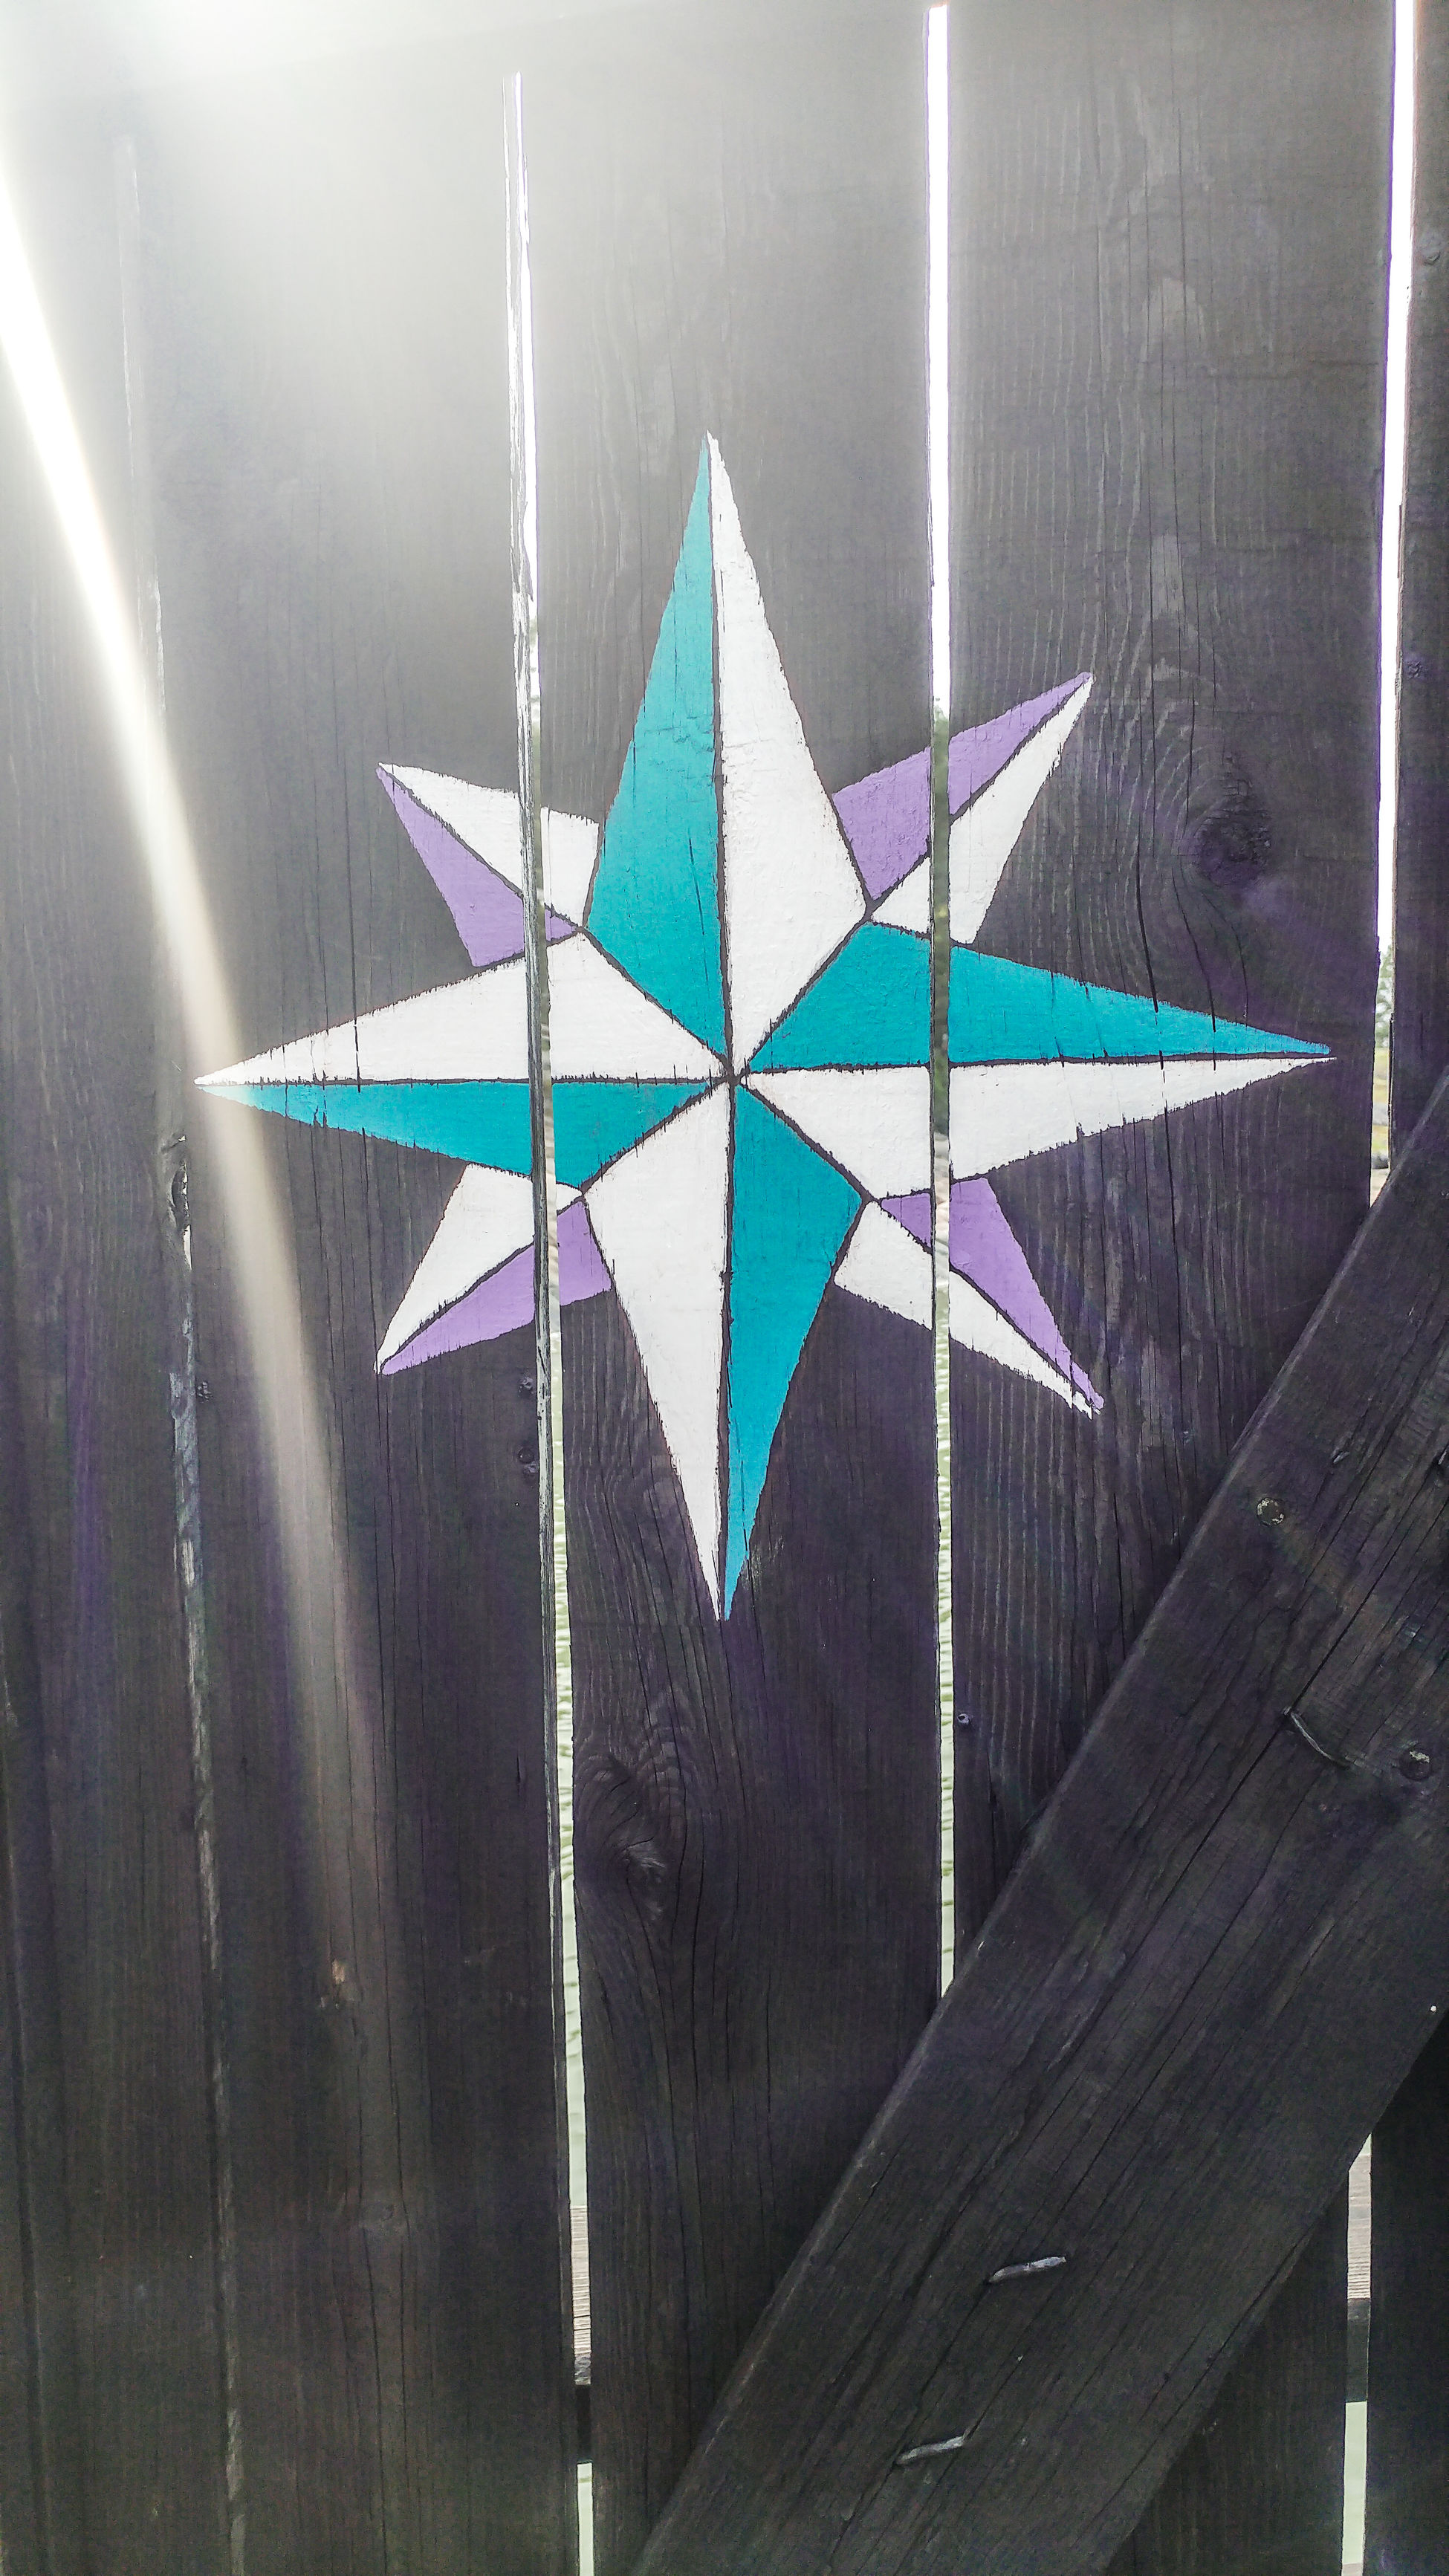 Creativity Multi Colored Star Shape No People Full Frame Moomin World Yfufinland Moomin Morning Scenery Turku Riverside Compass Door Paint Art Sunshine